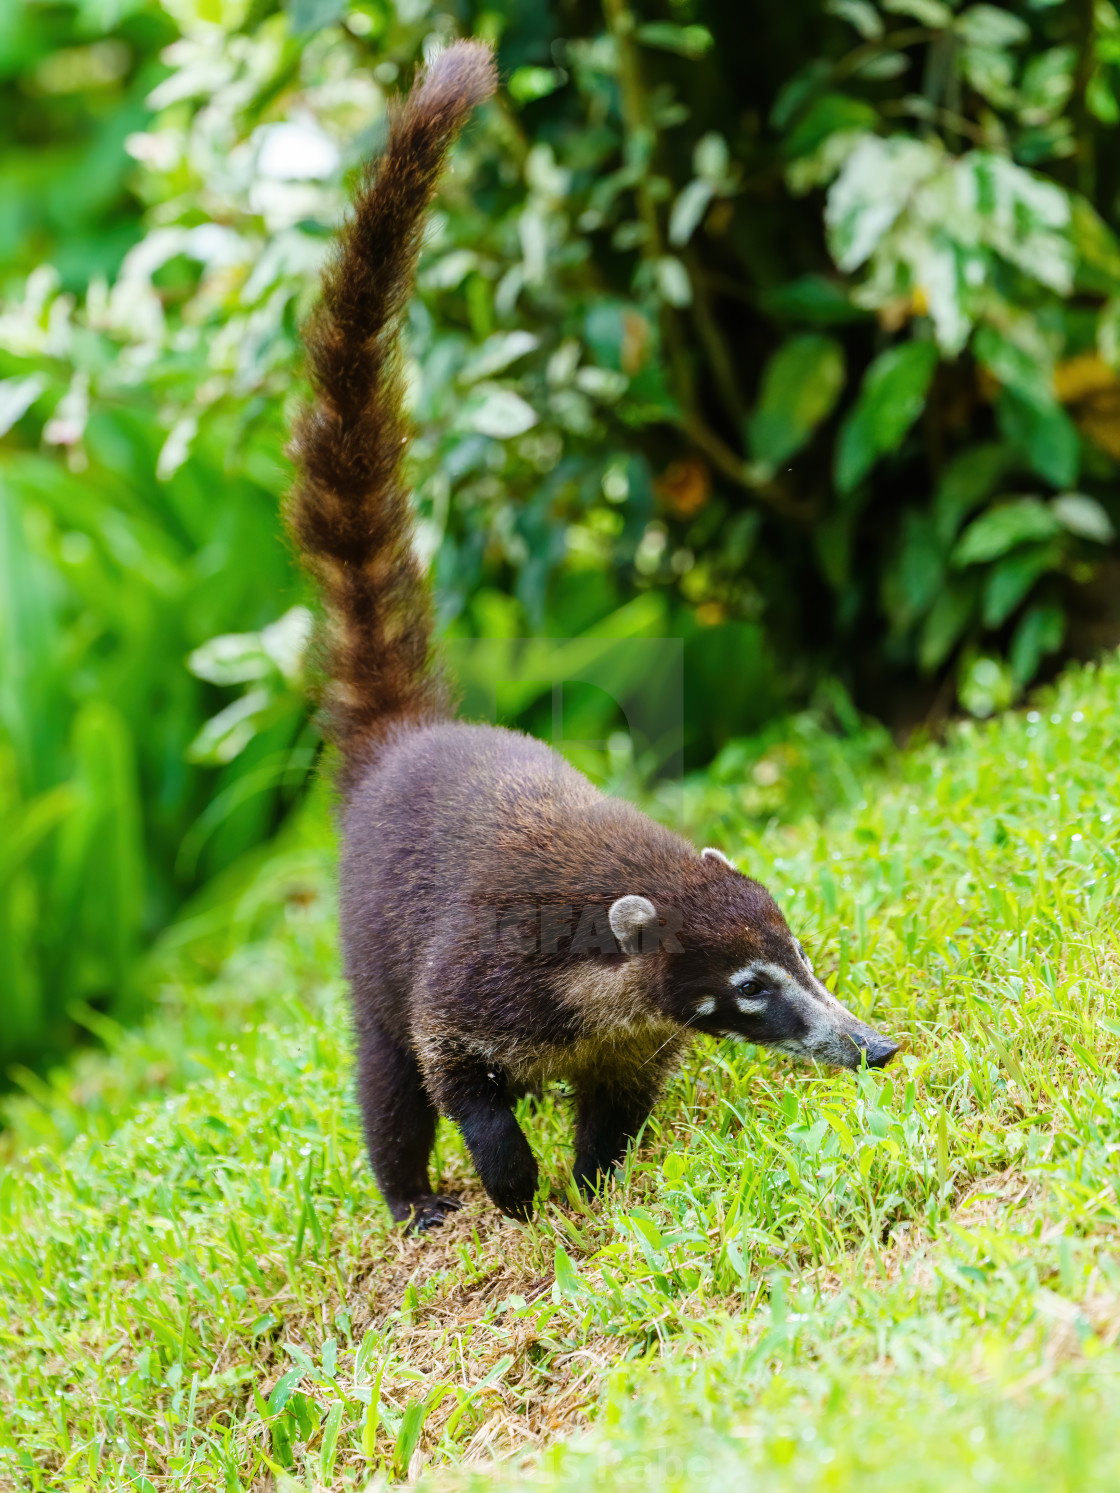 """Ring-Tailed Coati (Nasua nasua rufa) in green grass, taken in Costa Rica"" stock image"